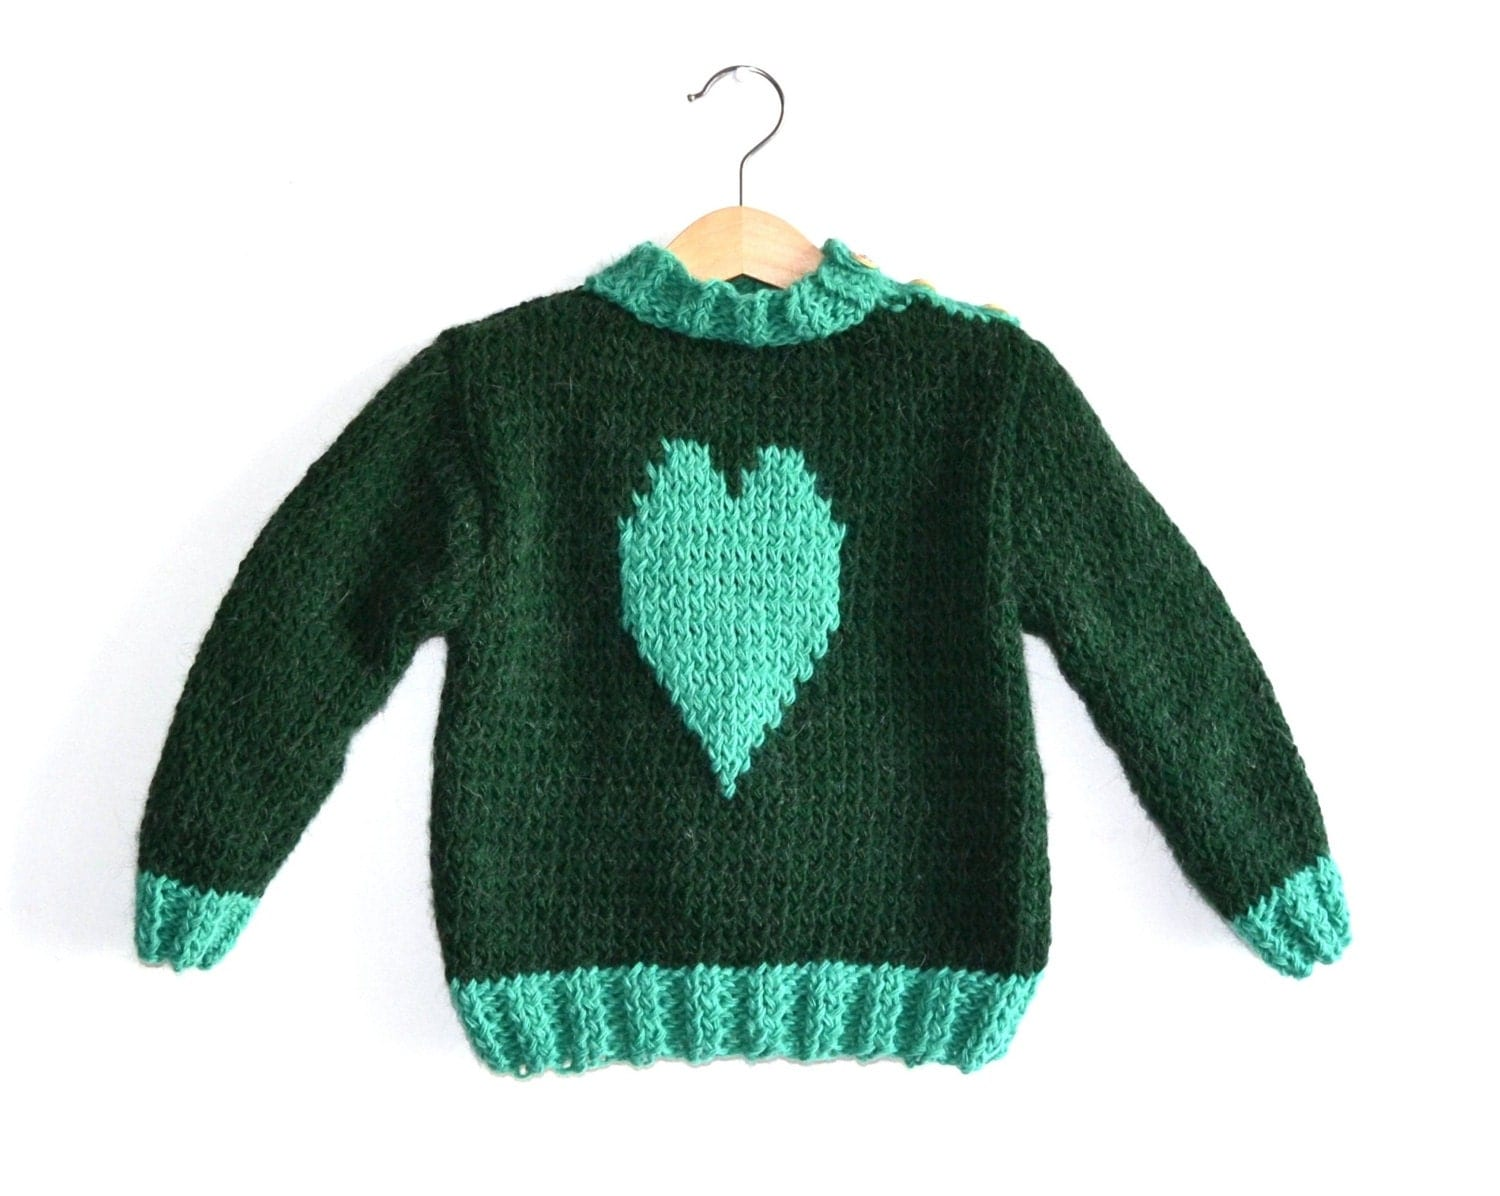 Hand Knit Sweater Patterns : Hand Knitted Baby Sweater Heart Pattern